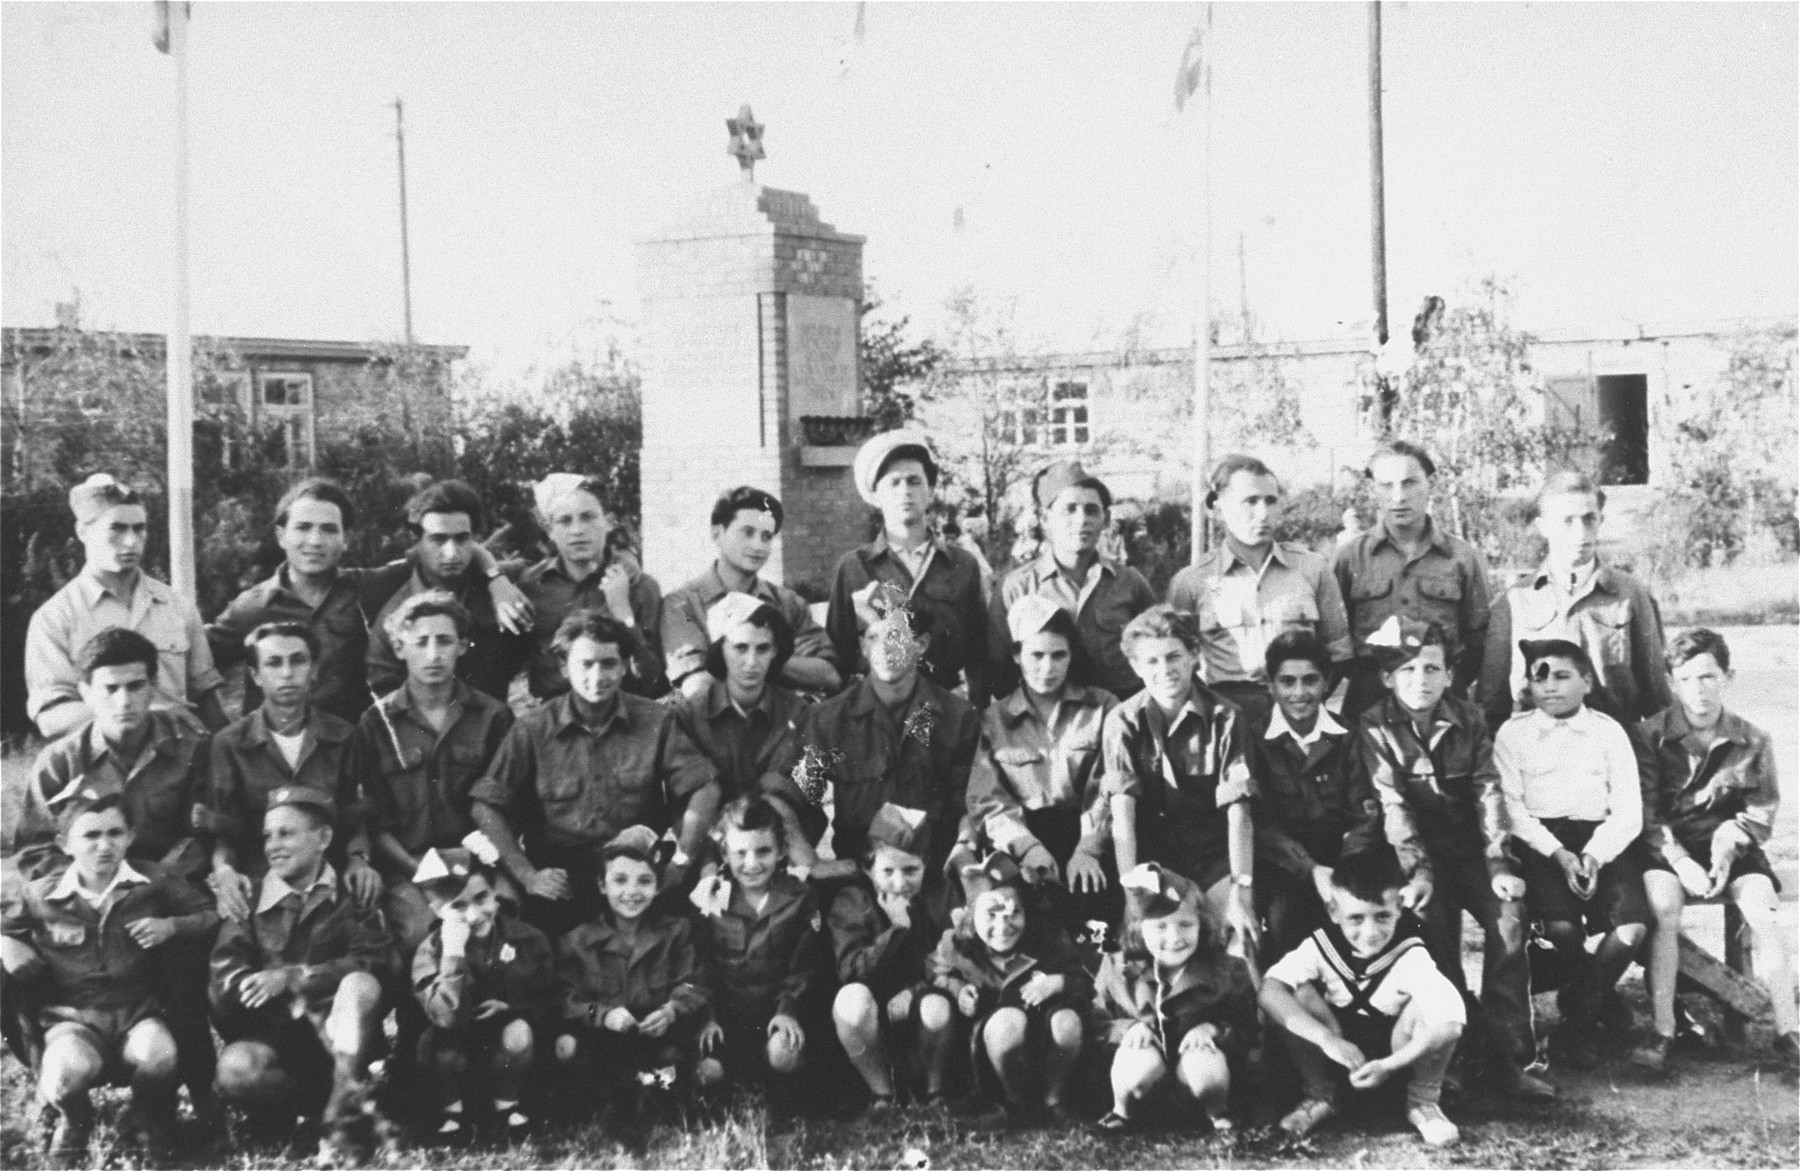 Group portrait of members of a Zionist youth organization posing in front of a monument in the Zeilsheim displaced persons camp.